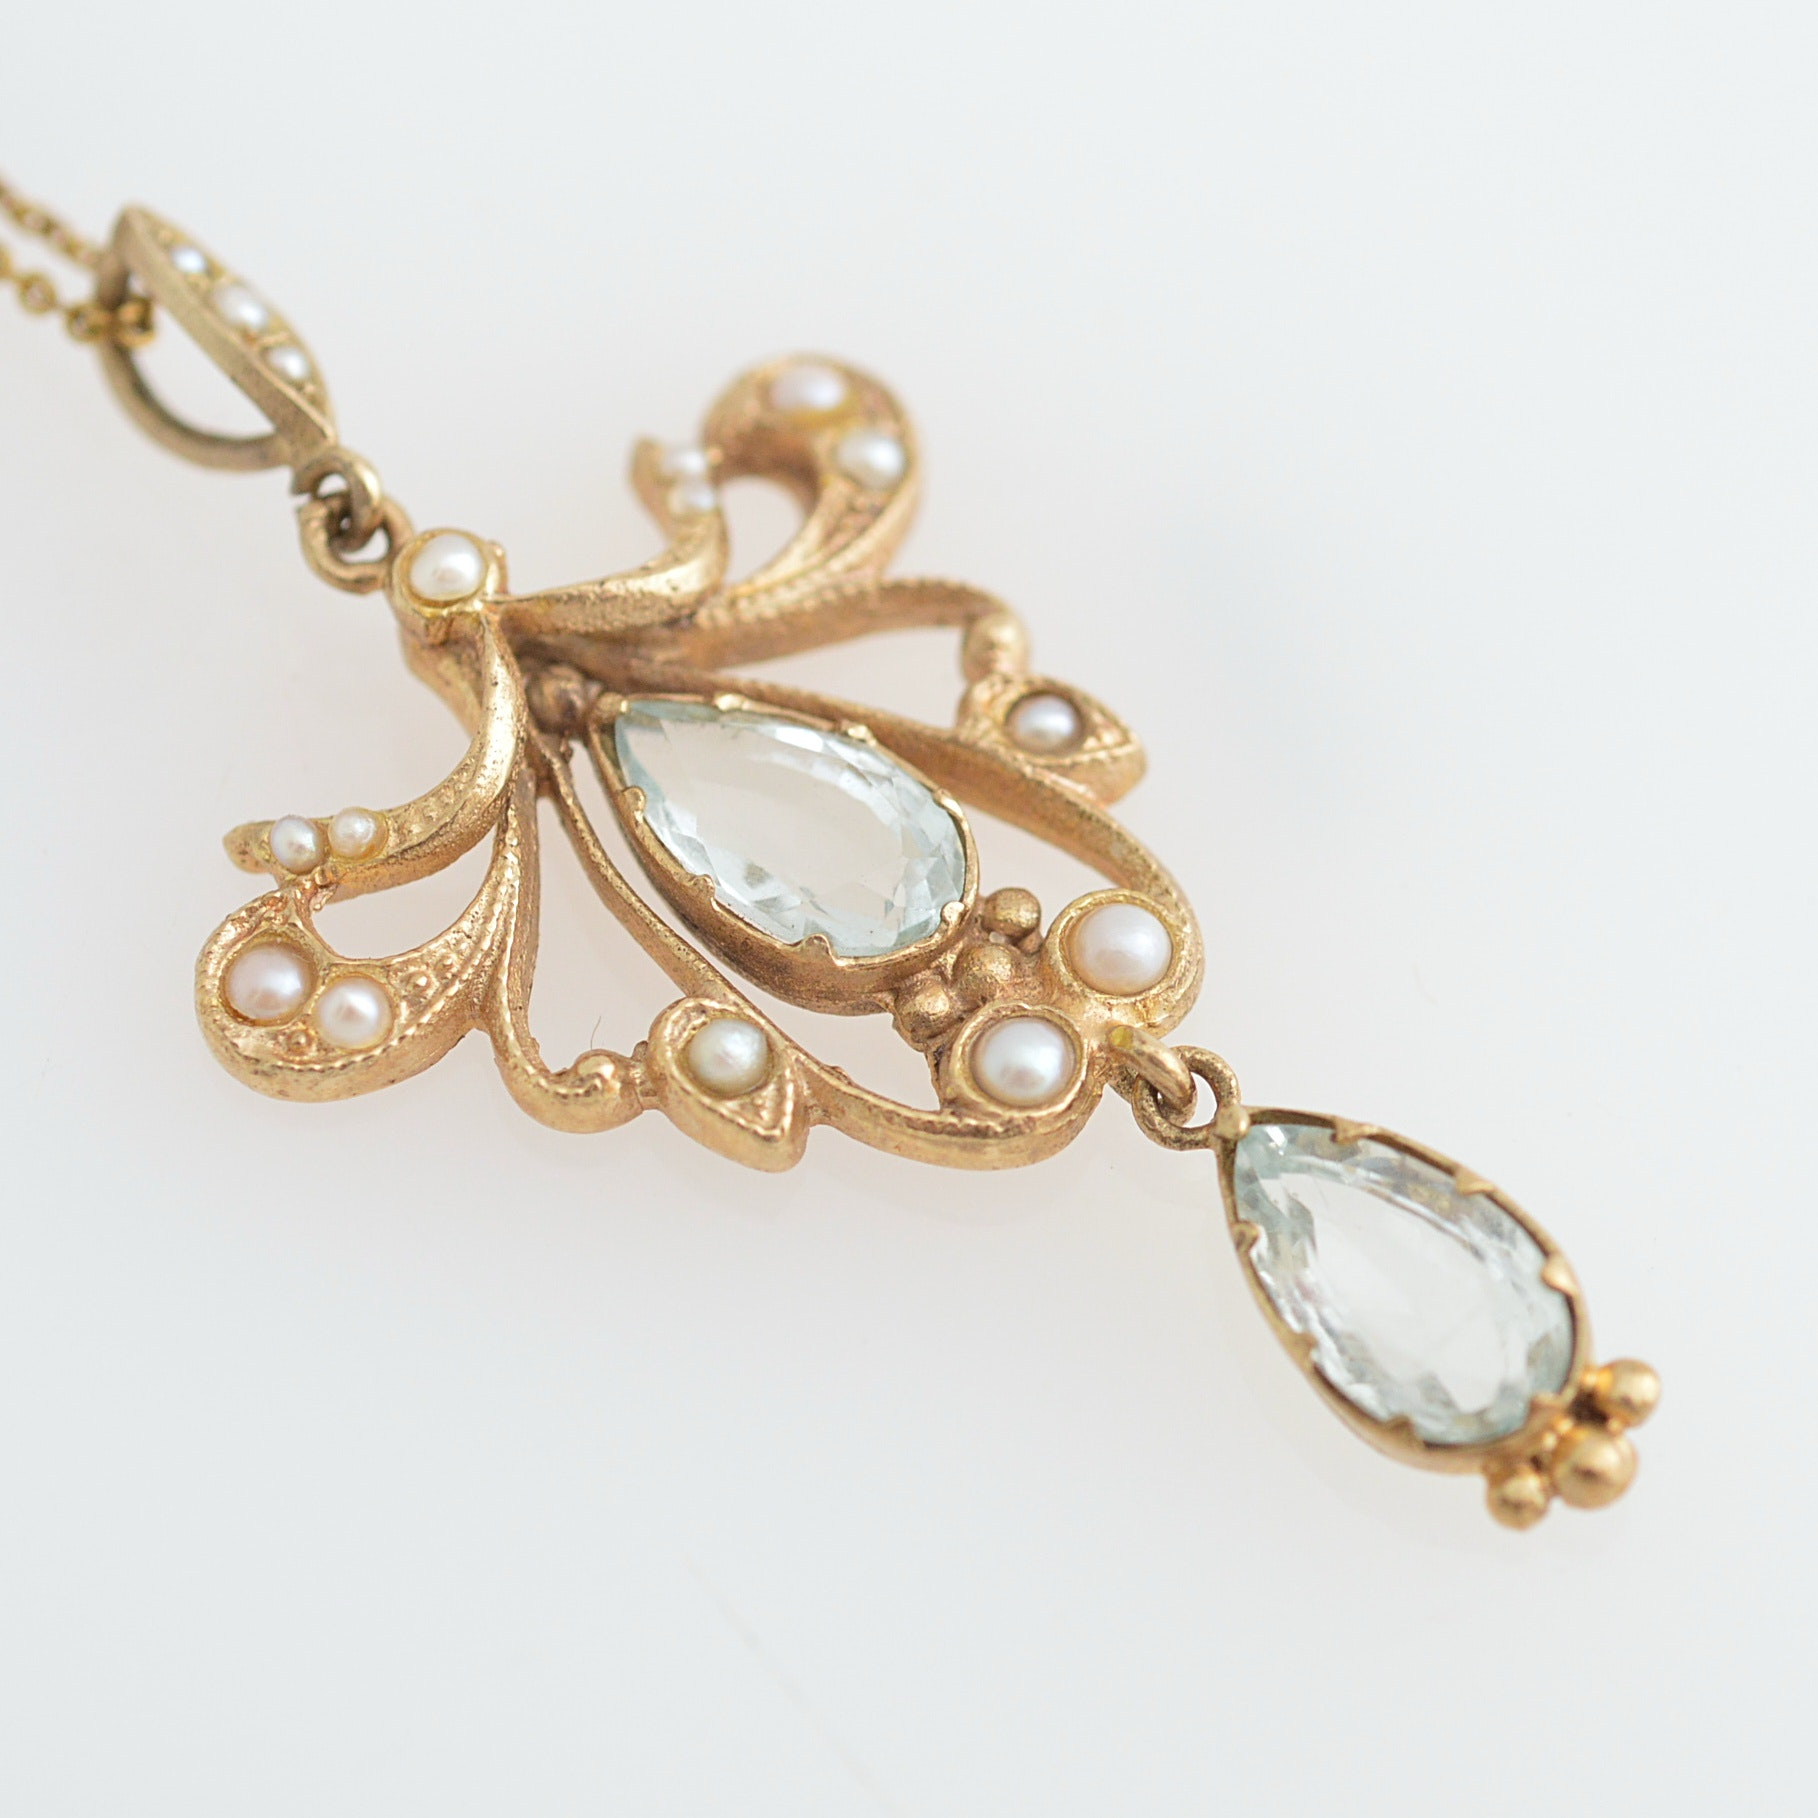 Vintage 9K Yellow Gold, Aquamarine and Seed Pearl Pendant on a Chain Necklace